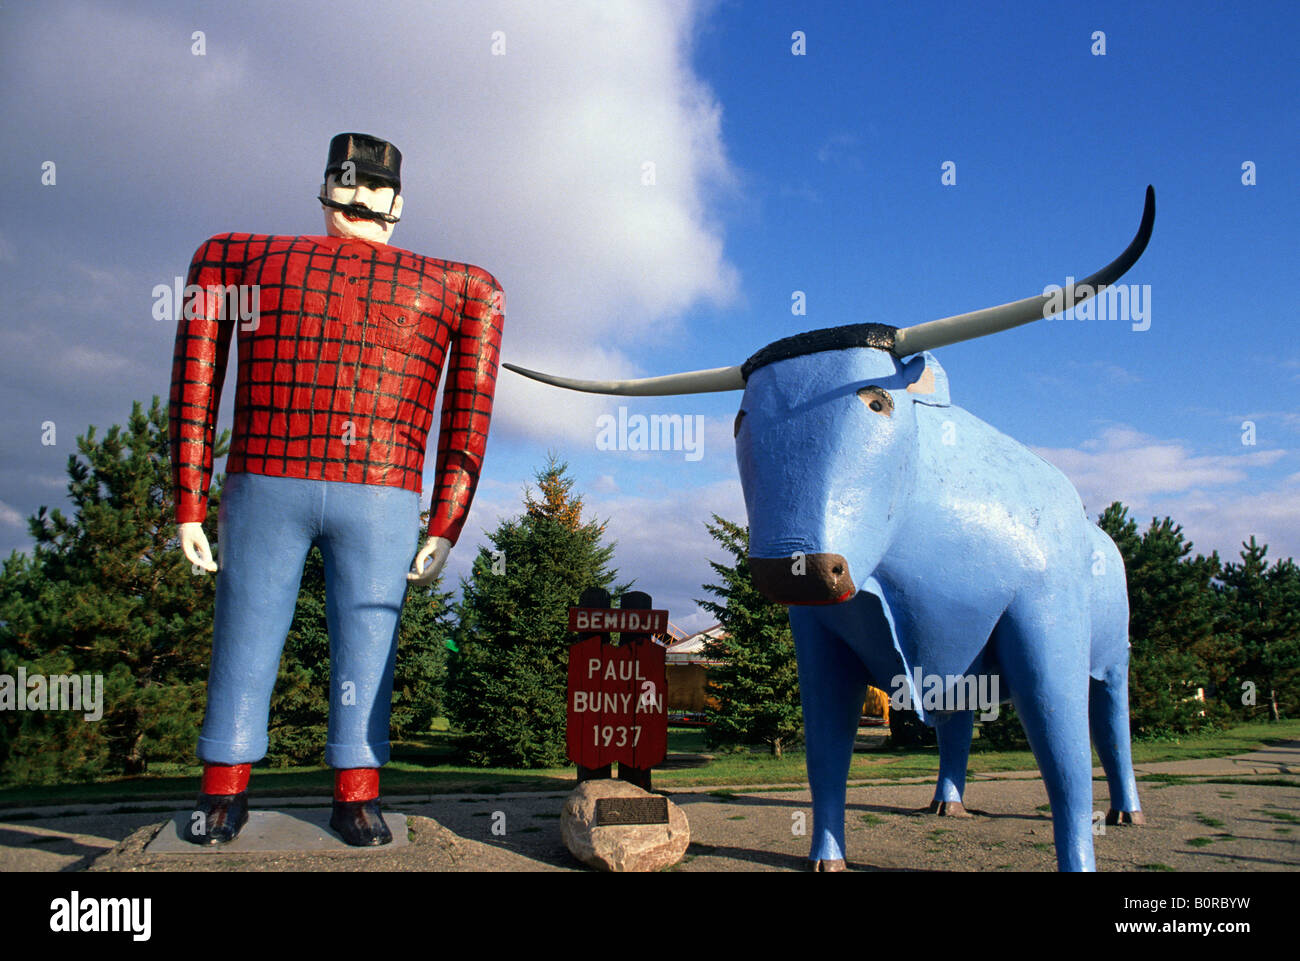 PAUL BUNYAN AND BABE, THE BLUE OX, AT THE PAUL BUNYAN CENTER, BRAINERD, NORTHERN MINNESOTA. SUMMER. - Stock Image